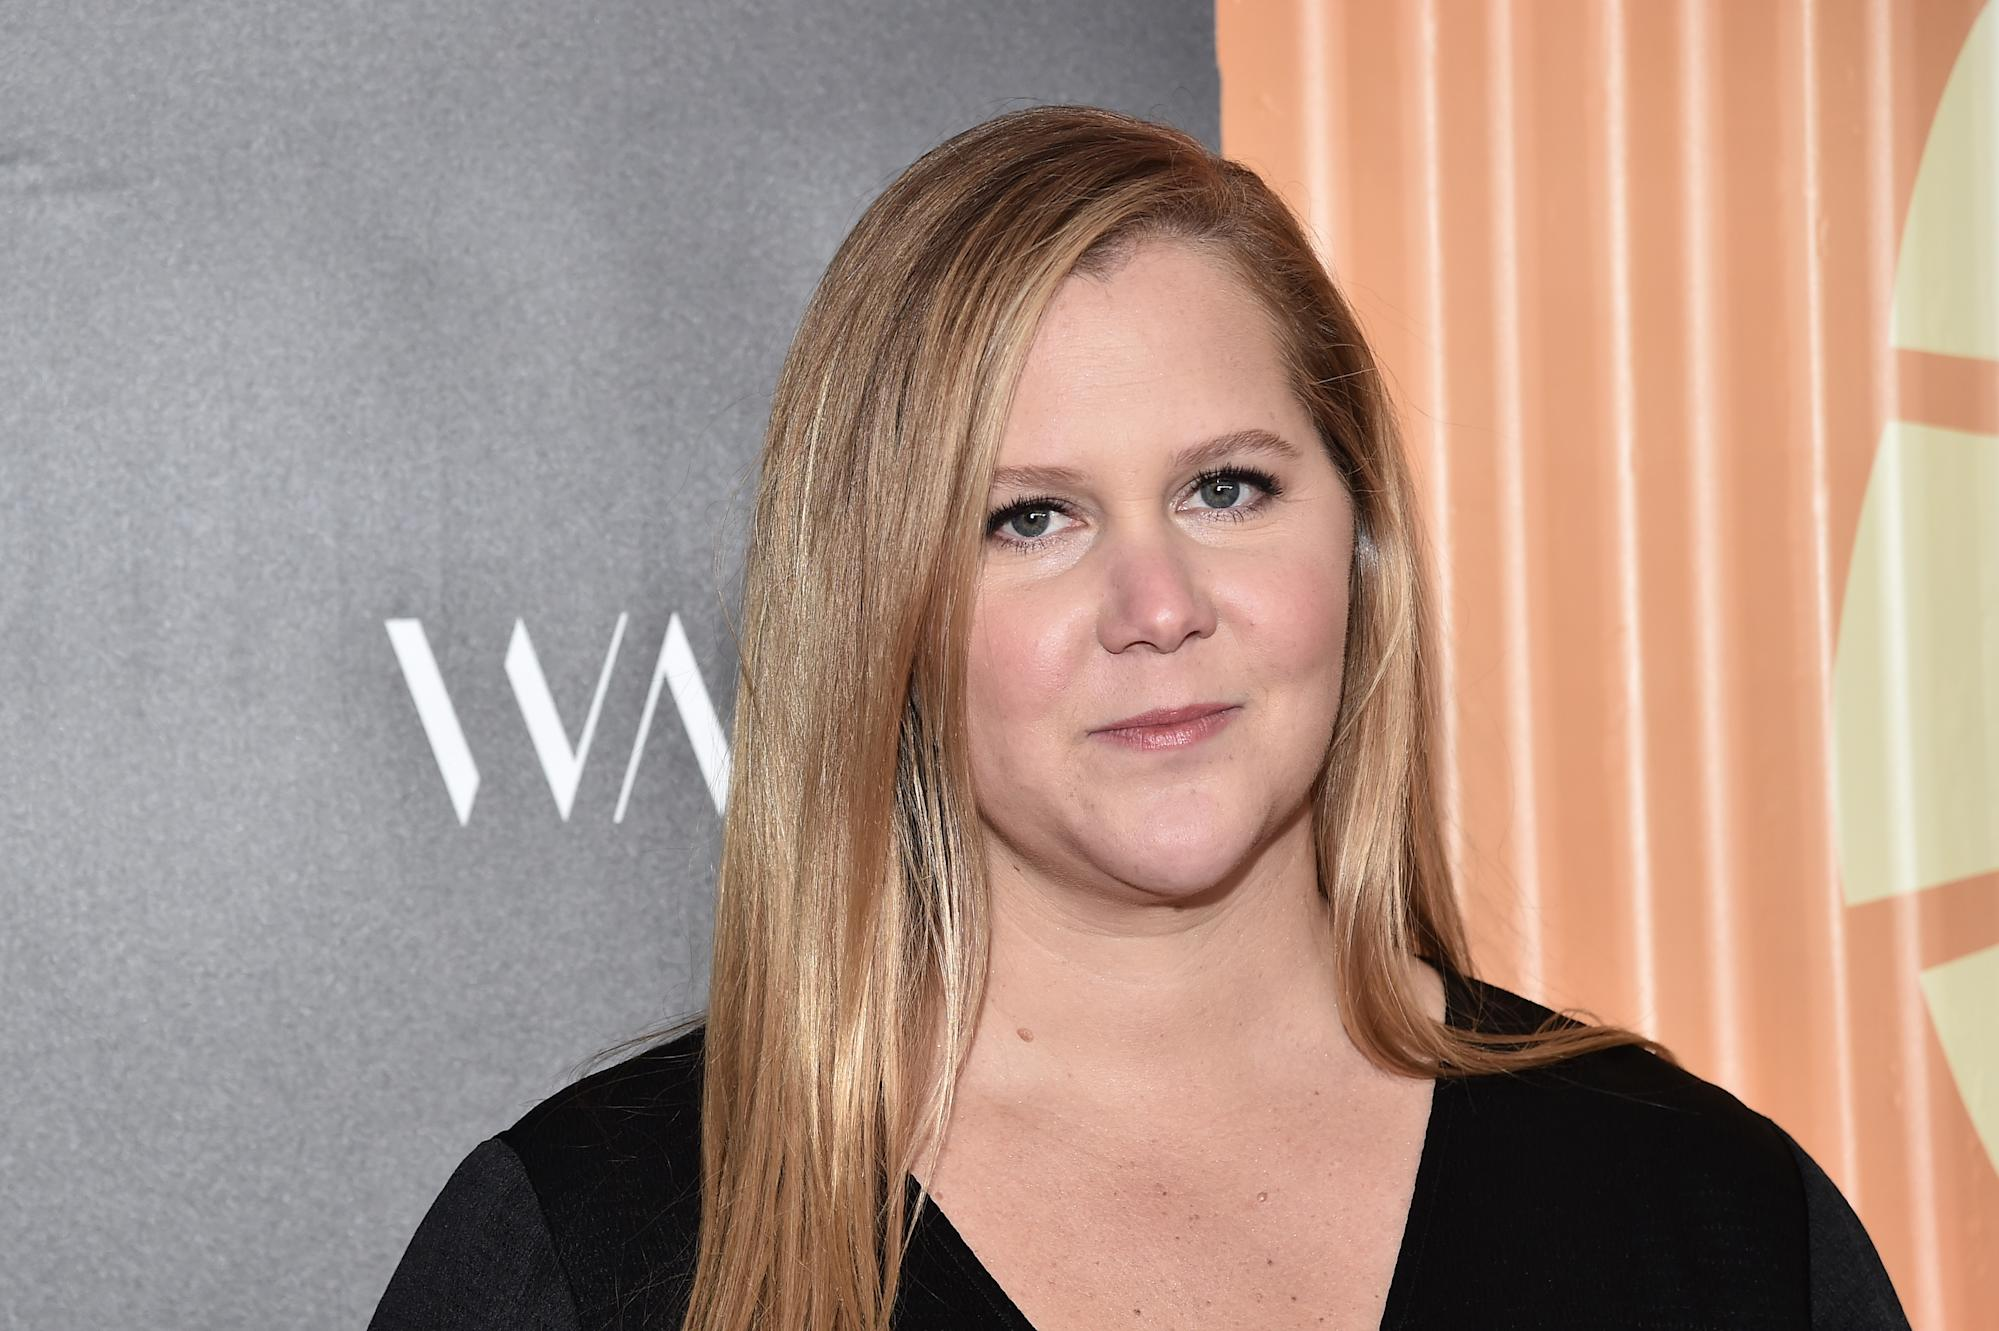 Amy Schumer explains decision to do IVF: 'I, for my safety, cannot be pregnant again'